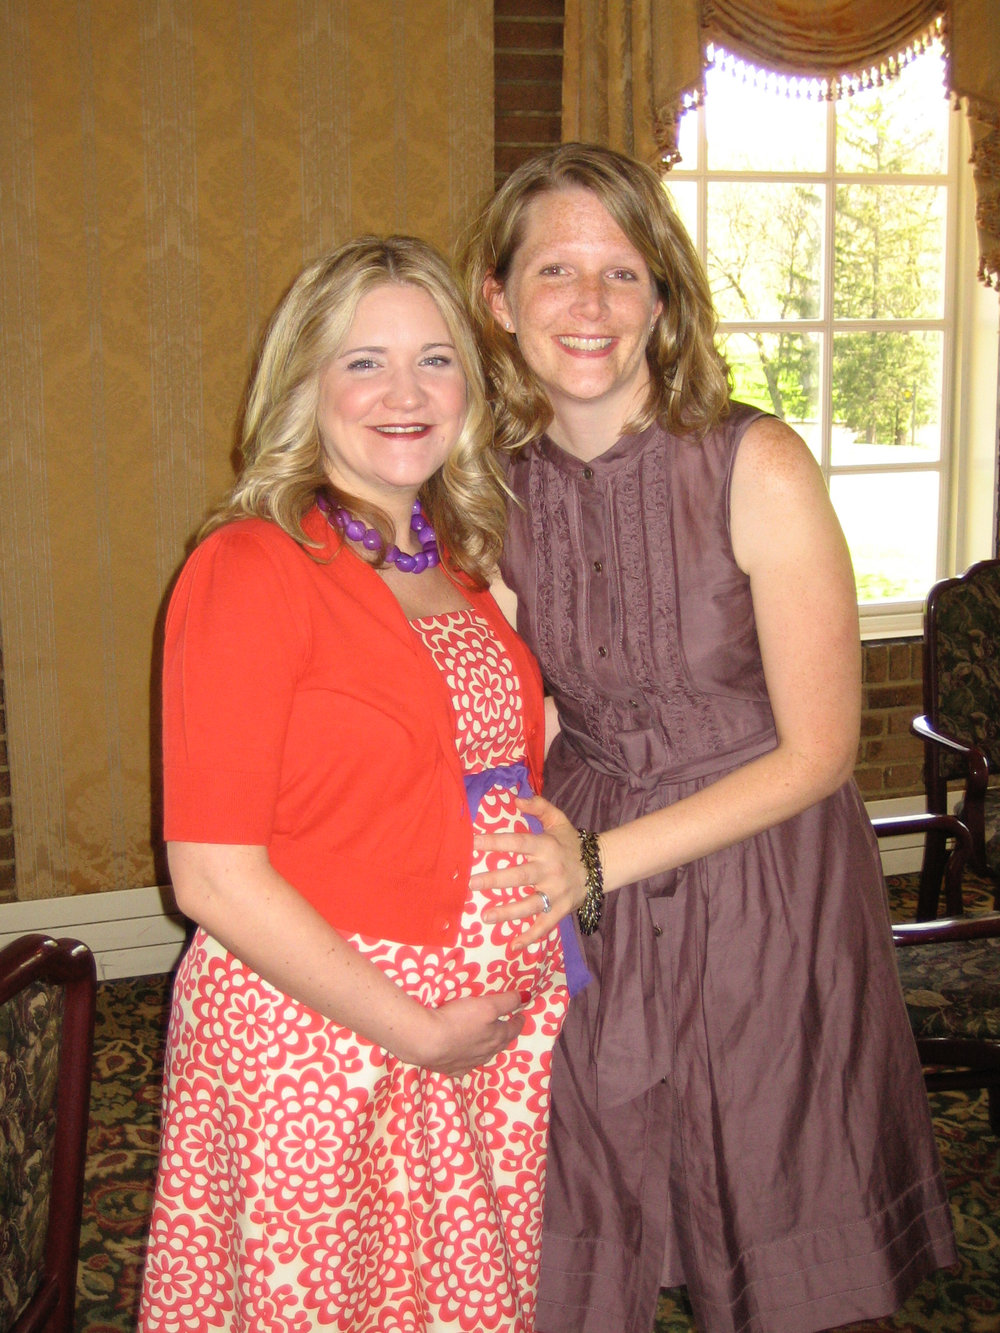 This is Katrina pregnant with Maddox at the awesome baby shower Marcy threw at Medinah. Marcy looks so cute here with her freckles! I am trying to be cute by am actually miserable with horrendous back pain, but man, that is an adorable maternity outfit!